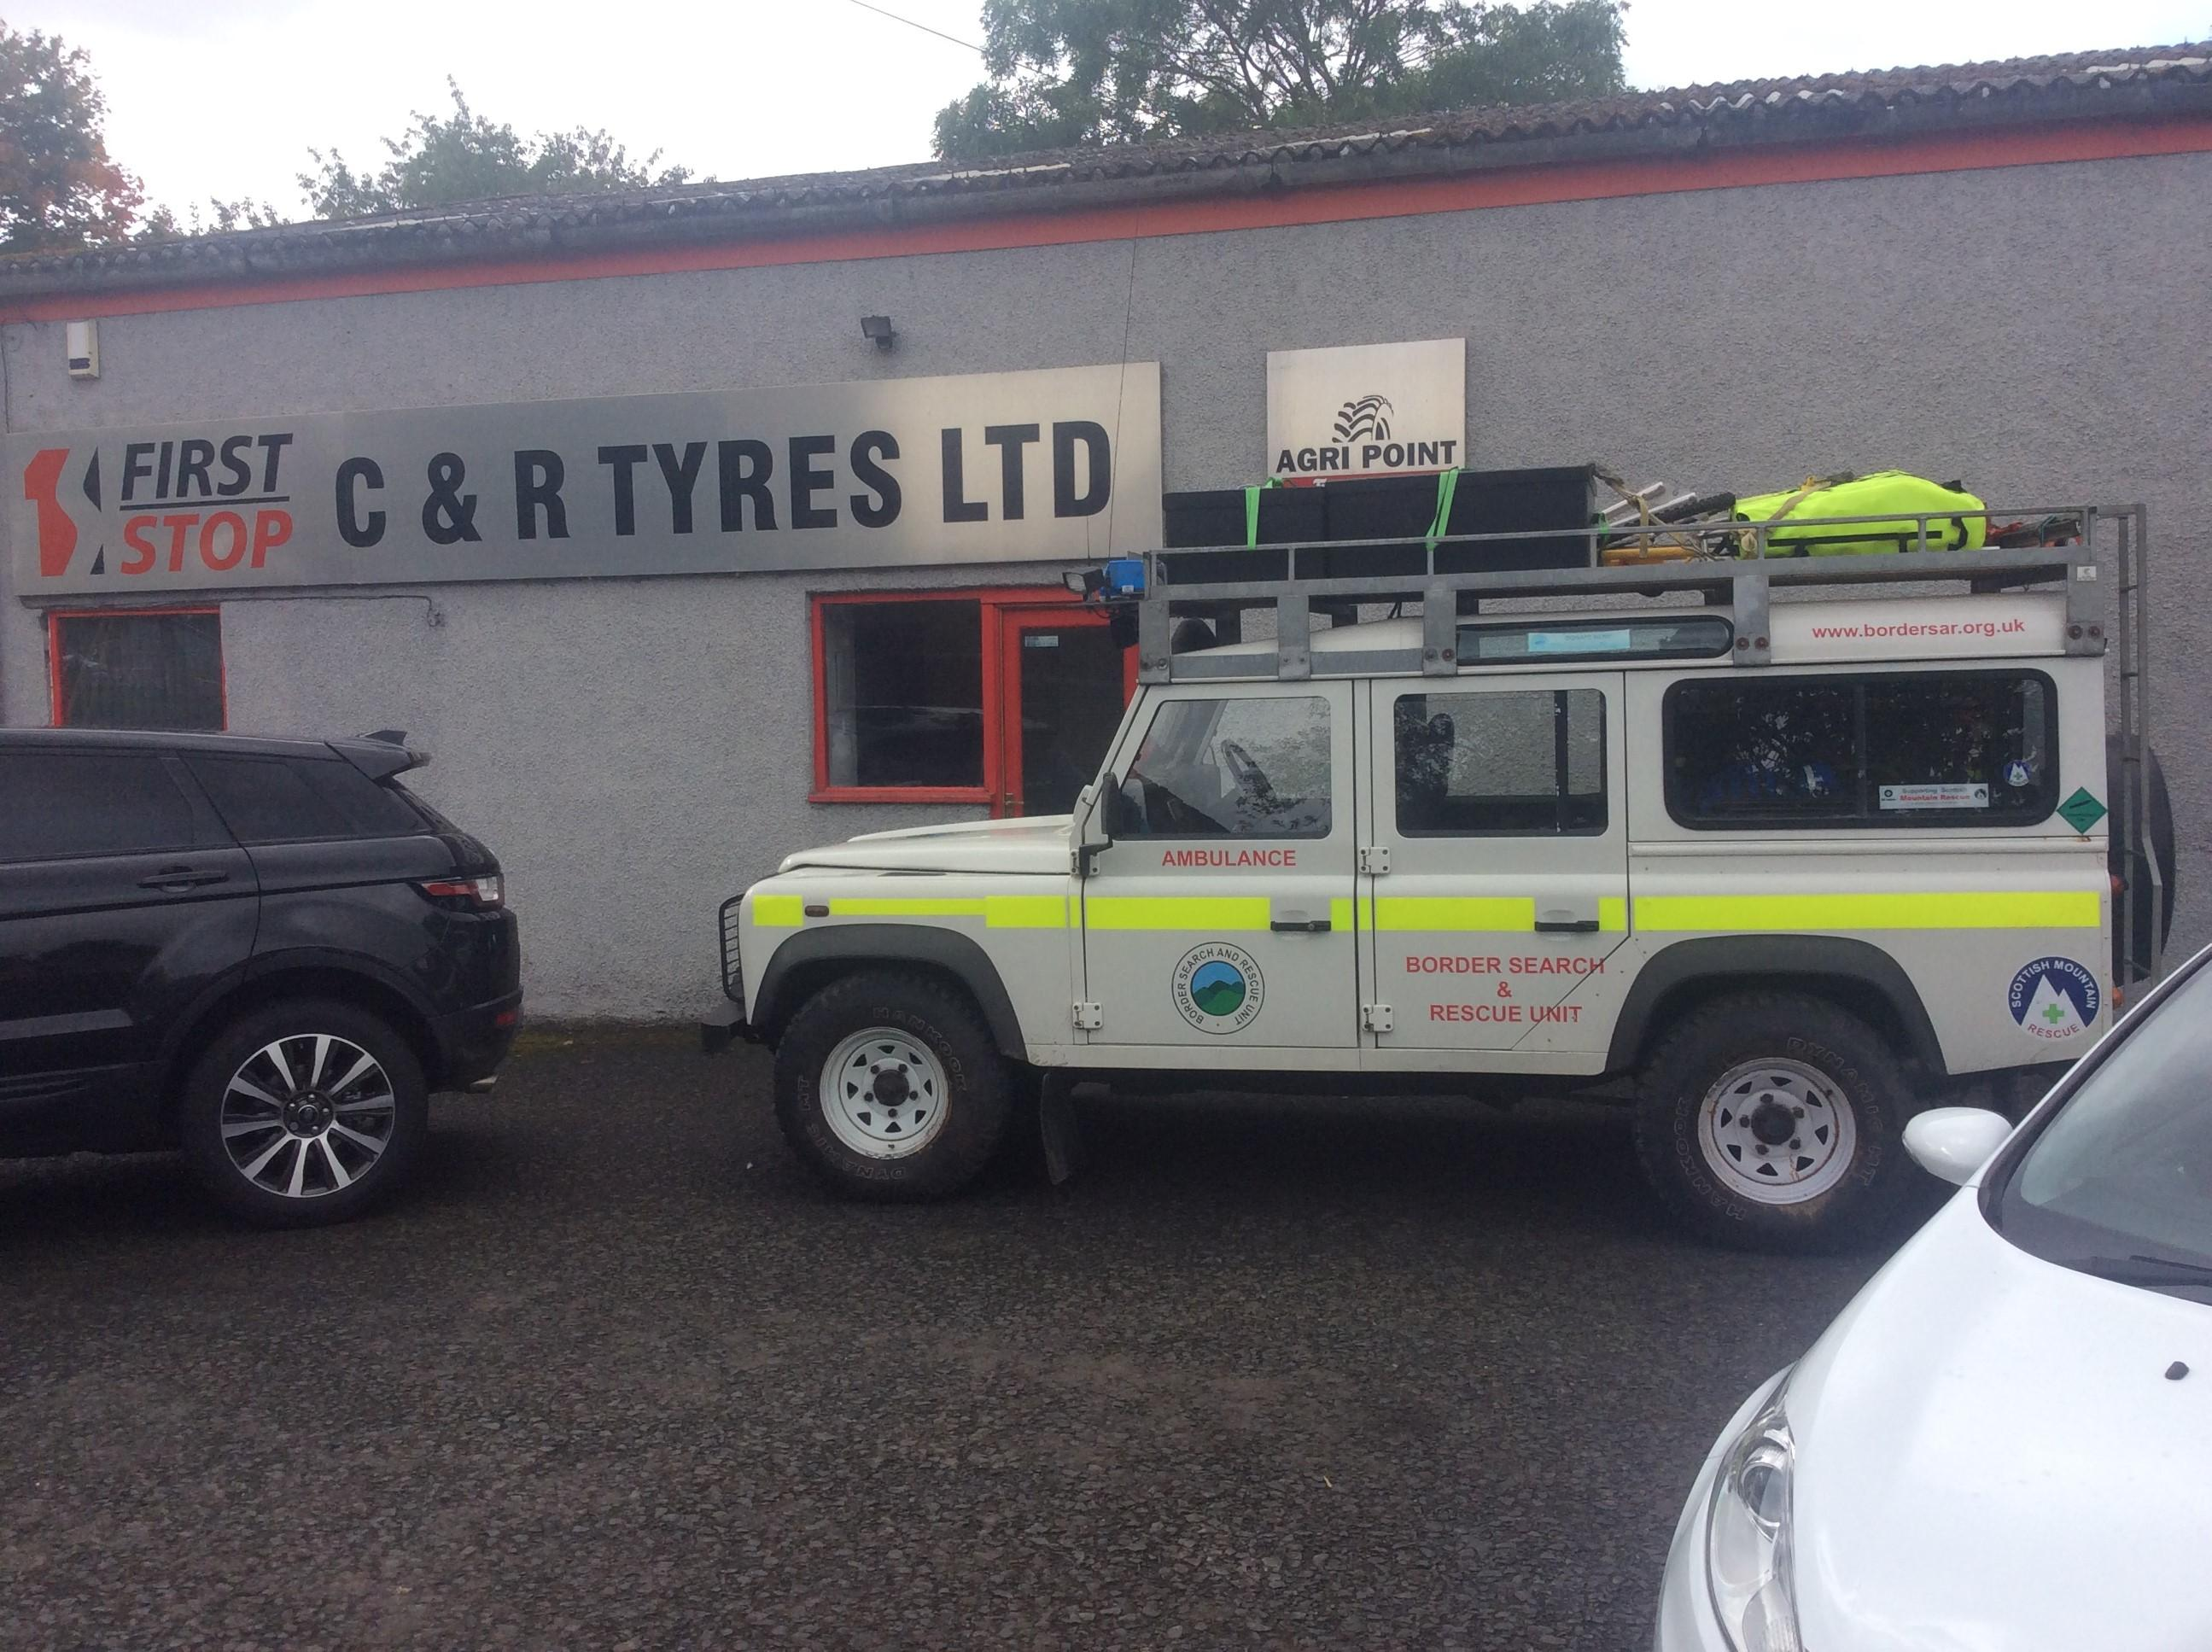 C&R Tyres keeping us on the road!